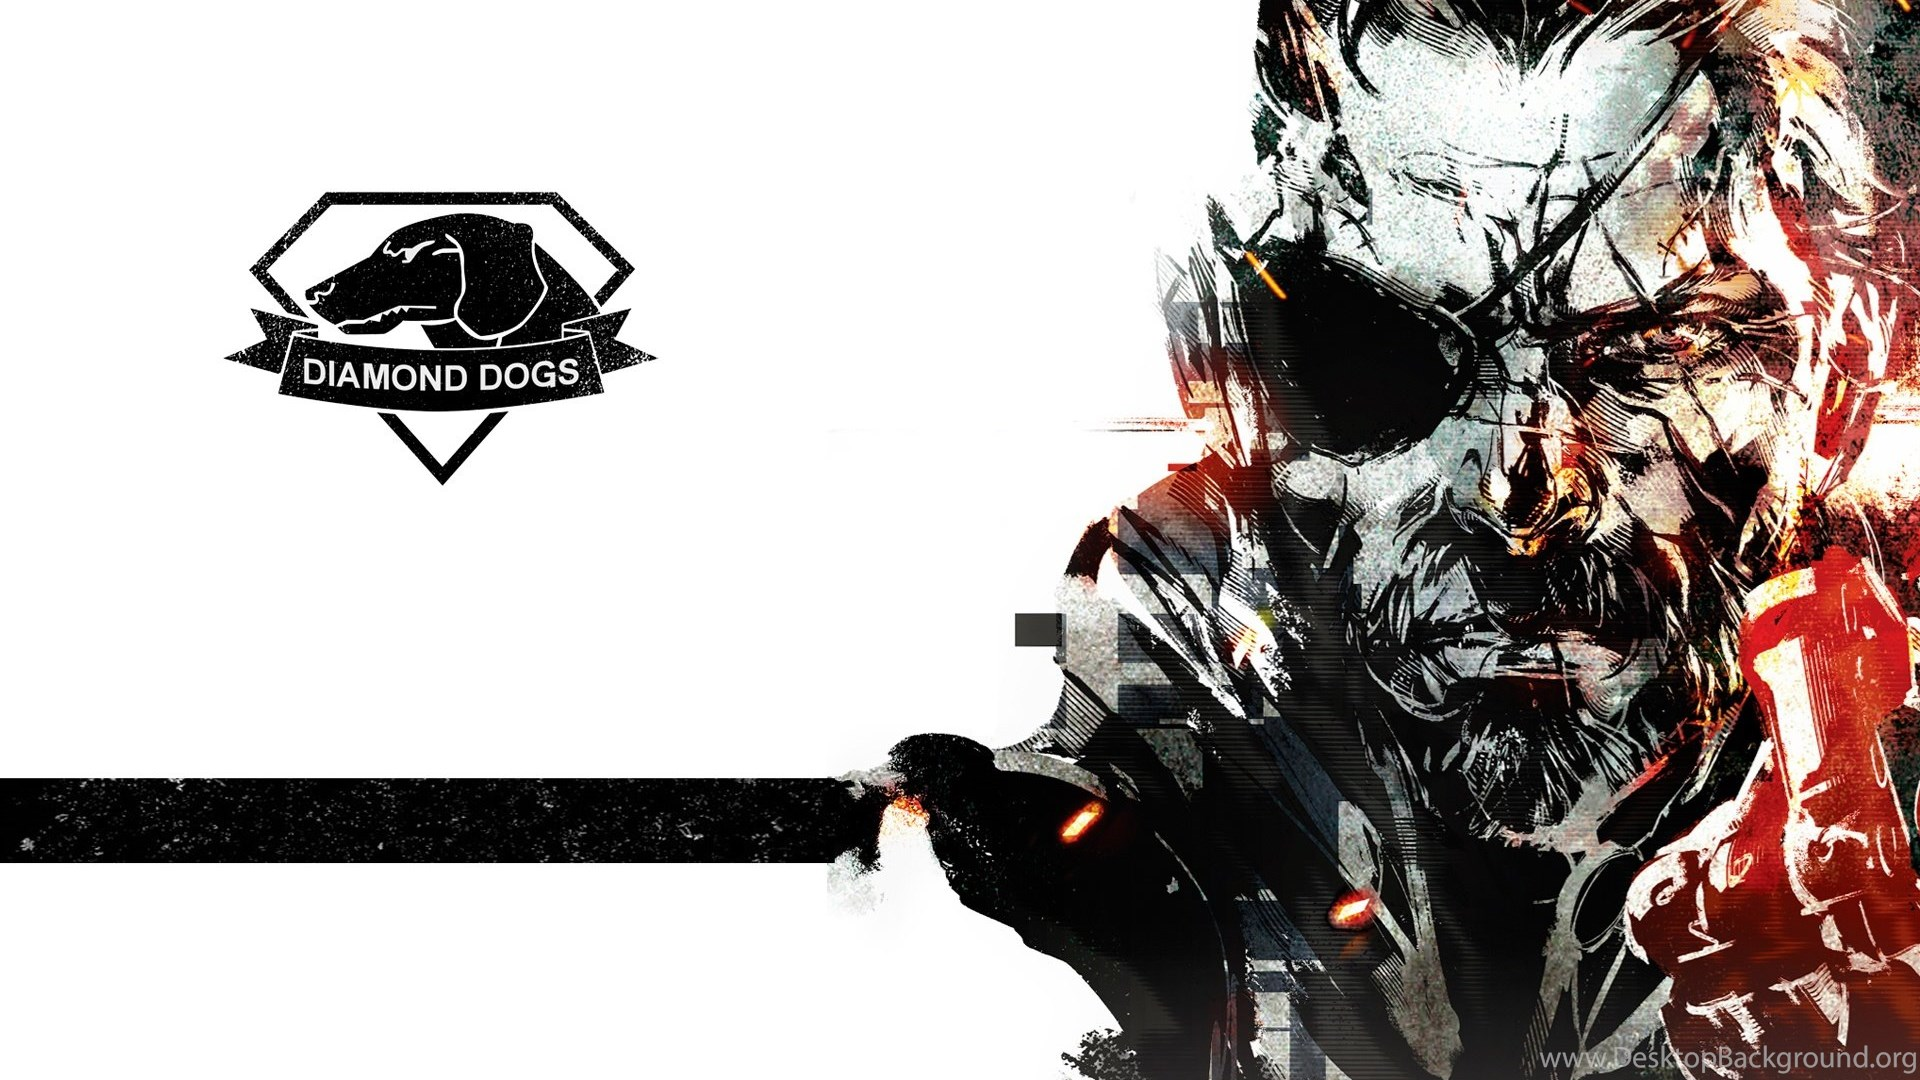 Big Boss Diamond Dogs Metal Gear Solid Wallpapers Hd Video Game